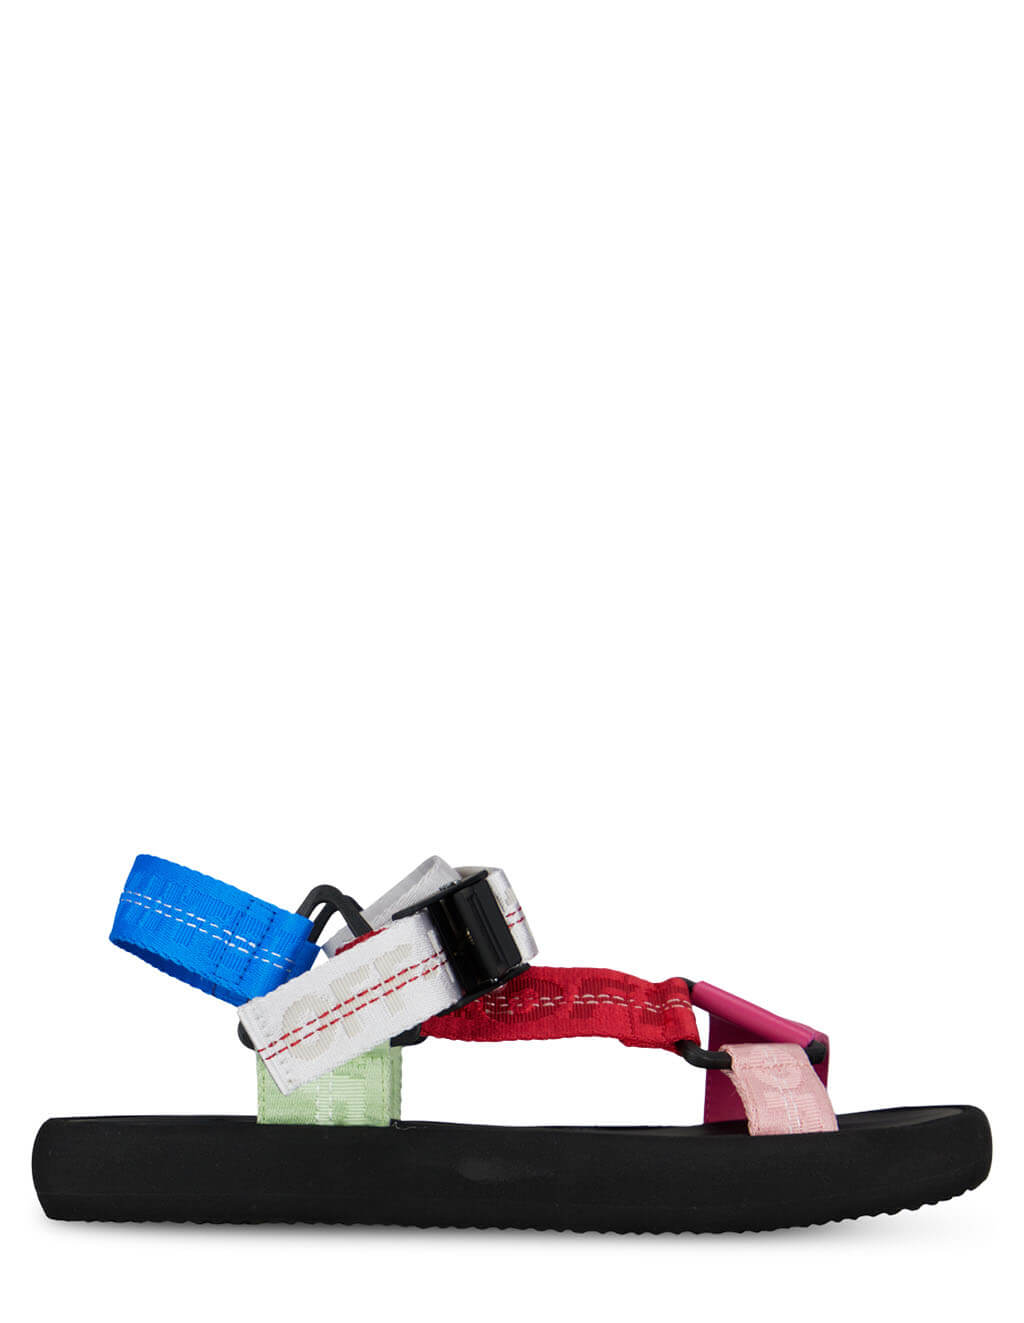 Women's Off-White Trek Sandals in Multicolour - OWIH007R21FAB0018400